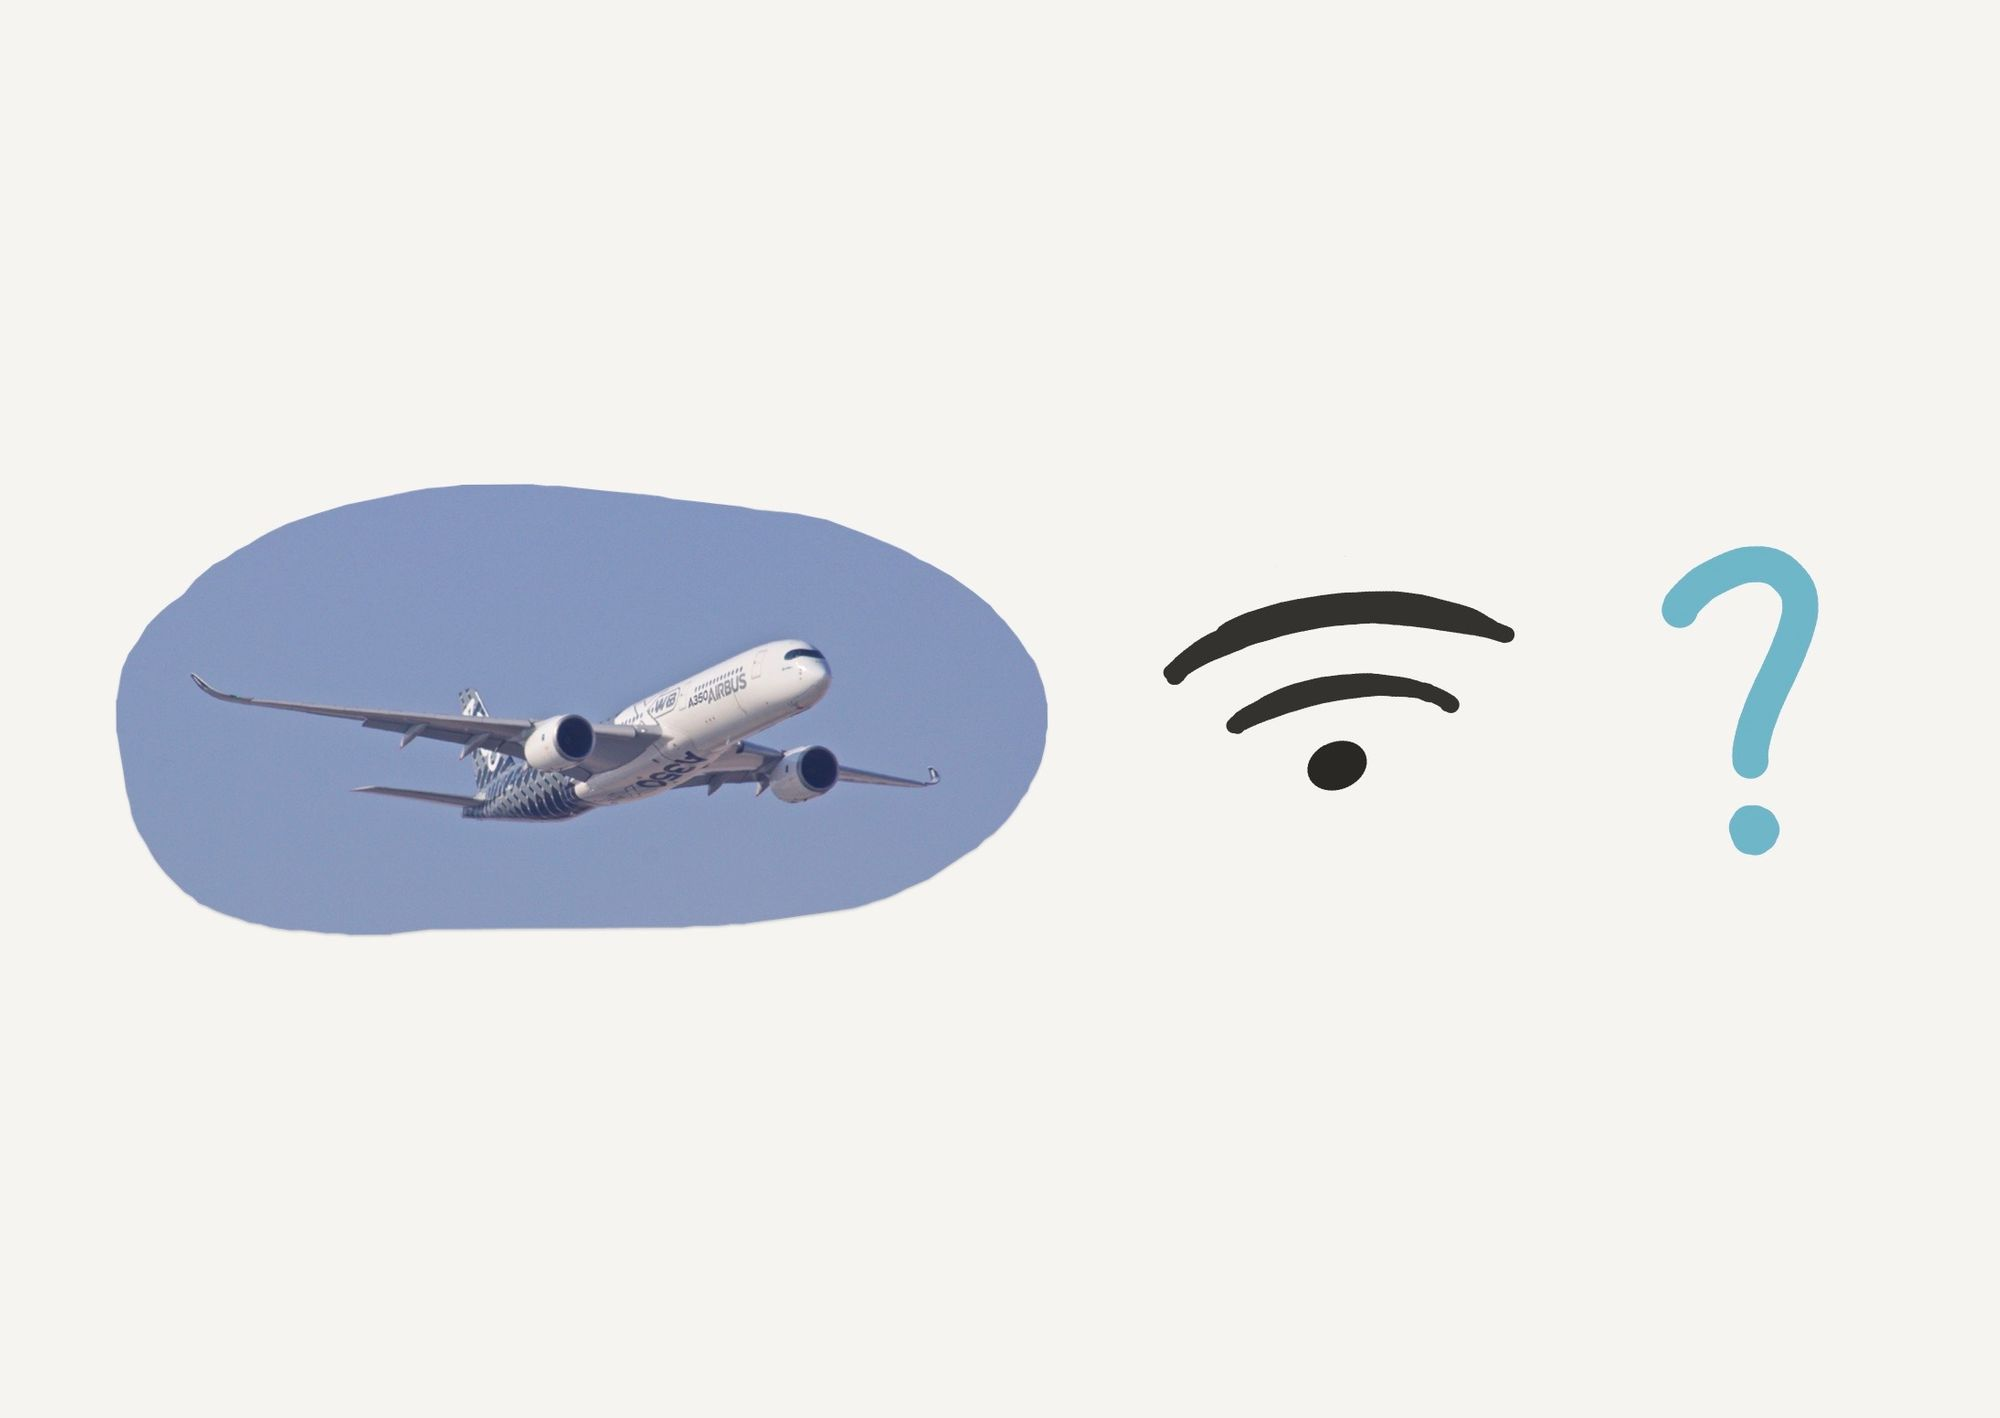 Does this plane have Wi-Fi?